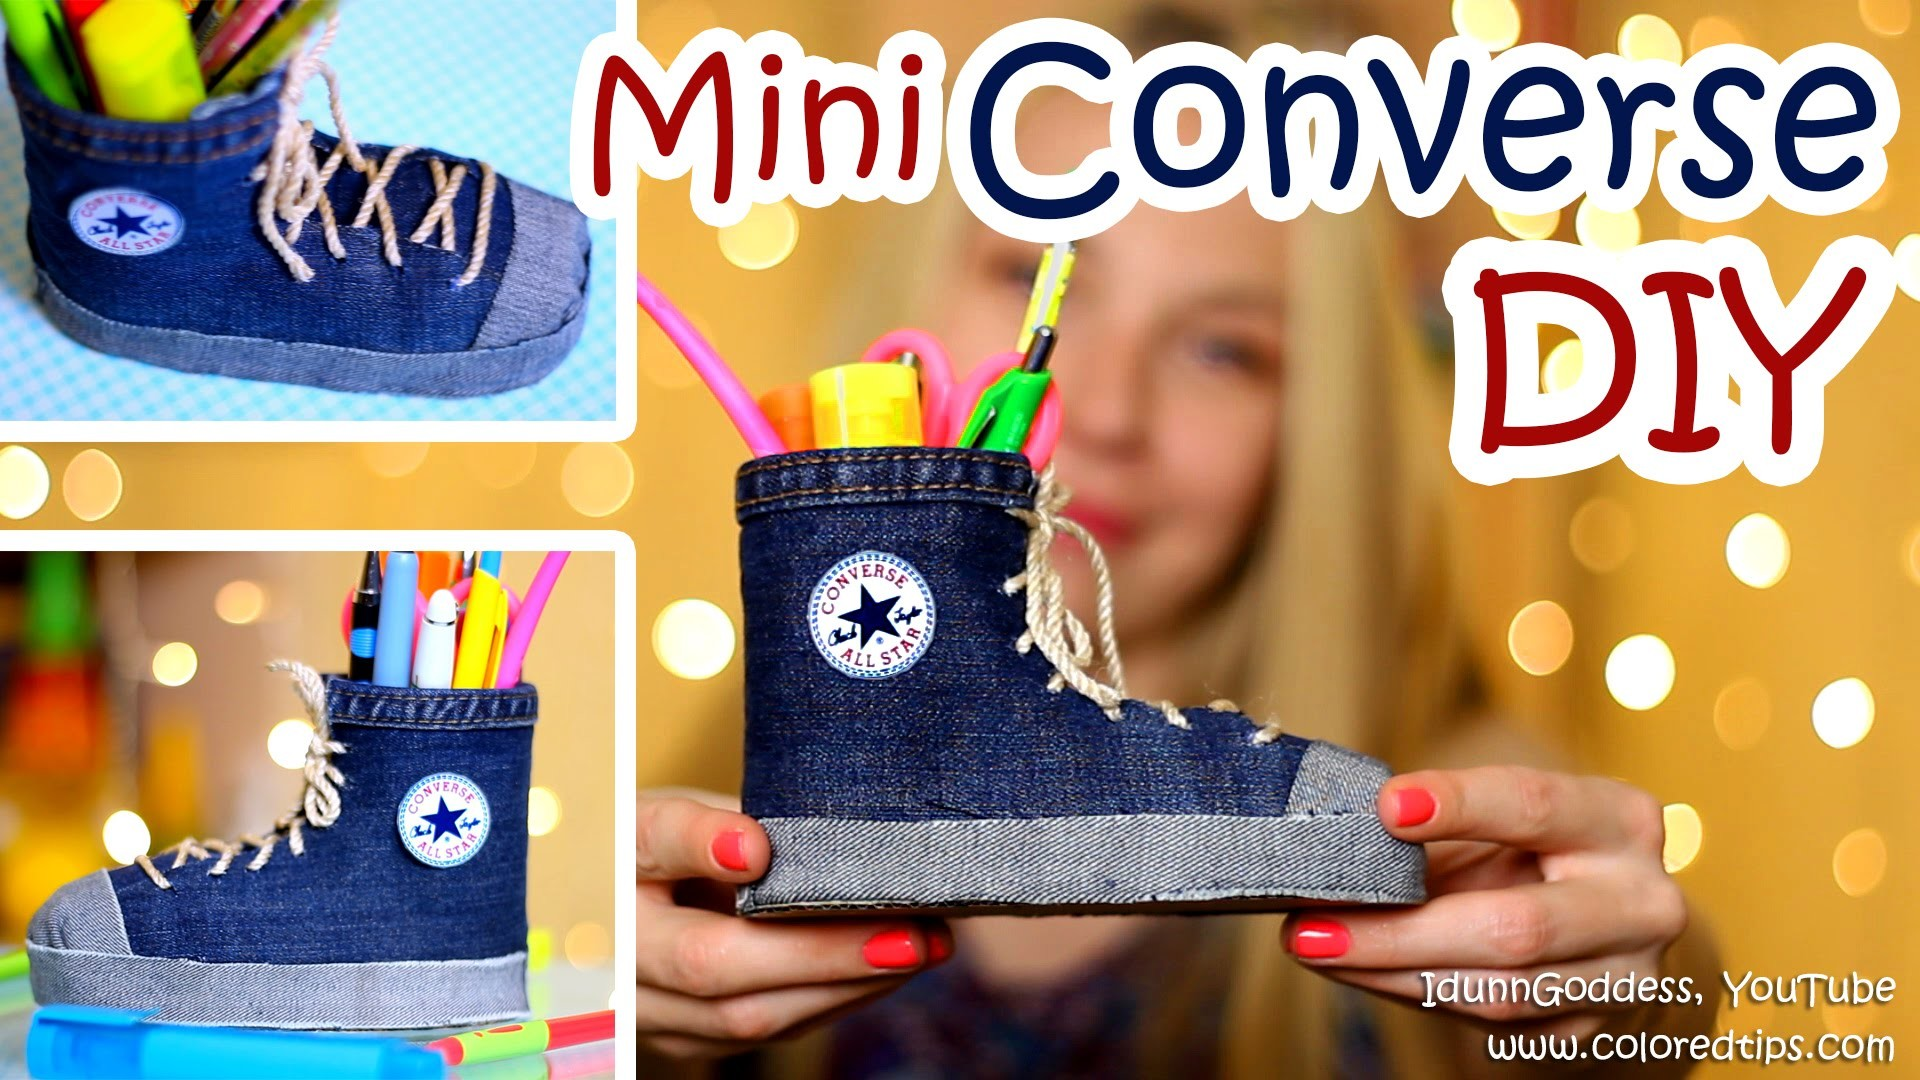 DIY Mini Converse Shoes Pen Holders Out Of An Old Jeans and Plastic Bottle (NO SEW)